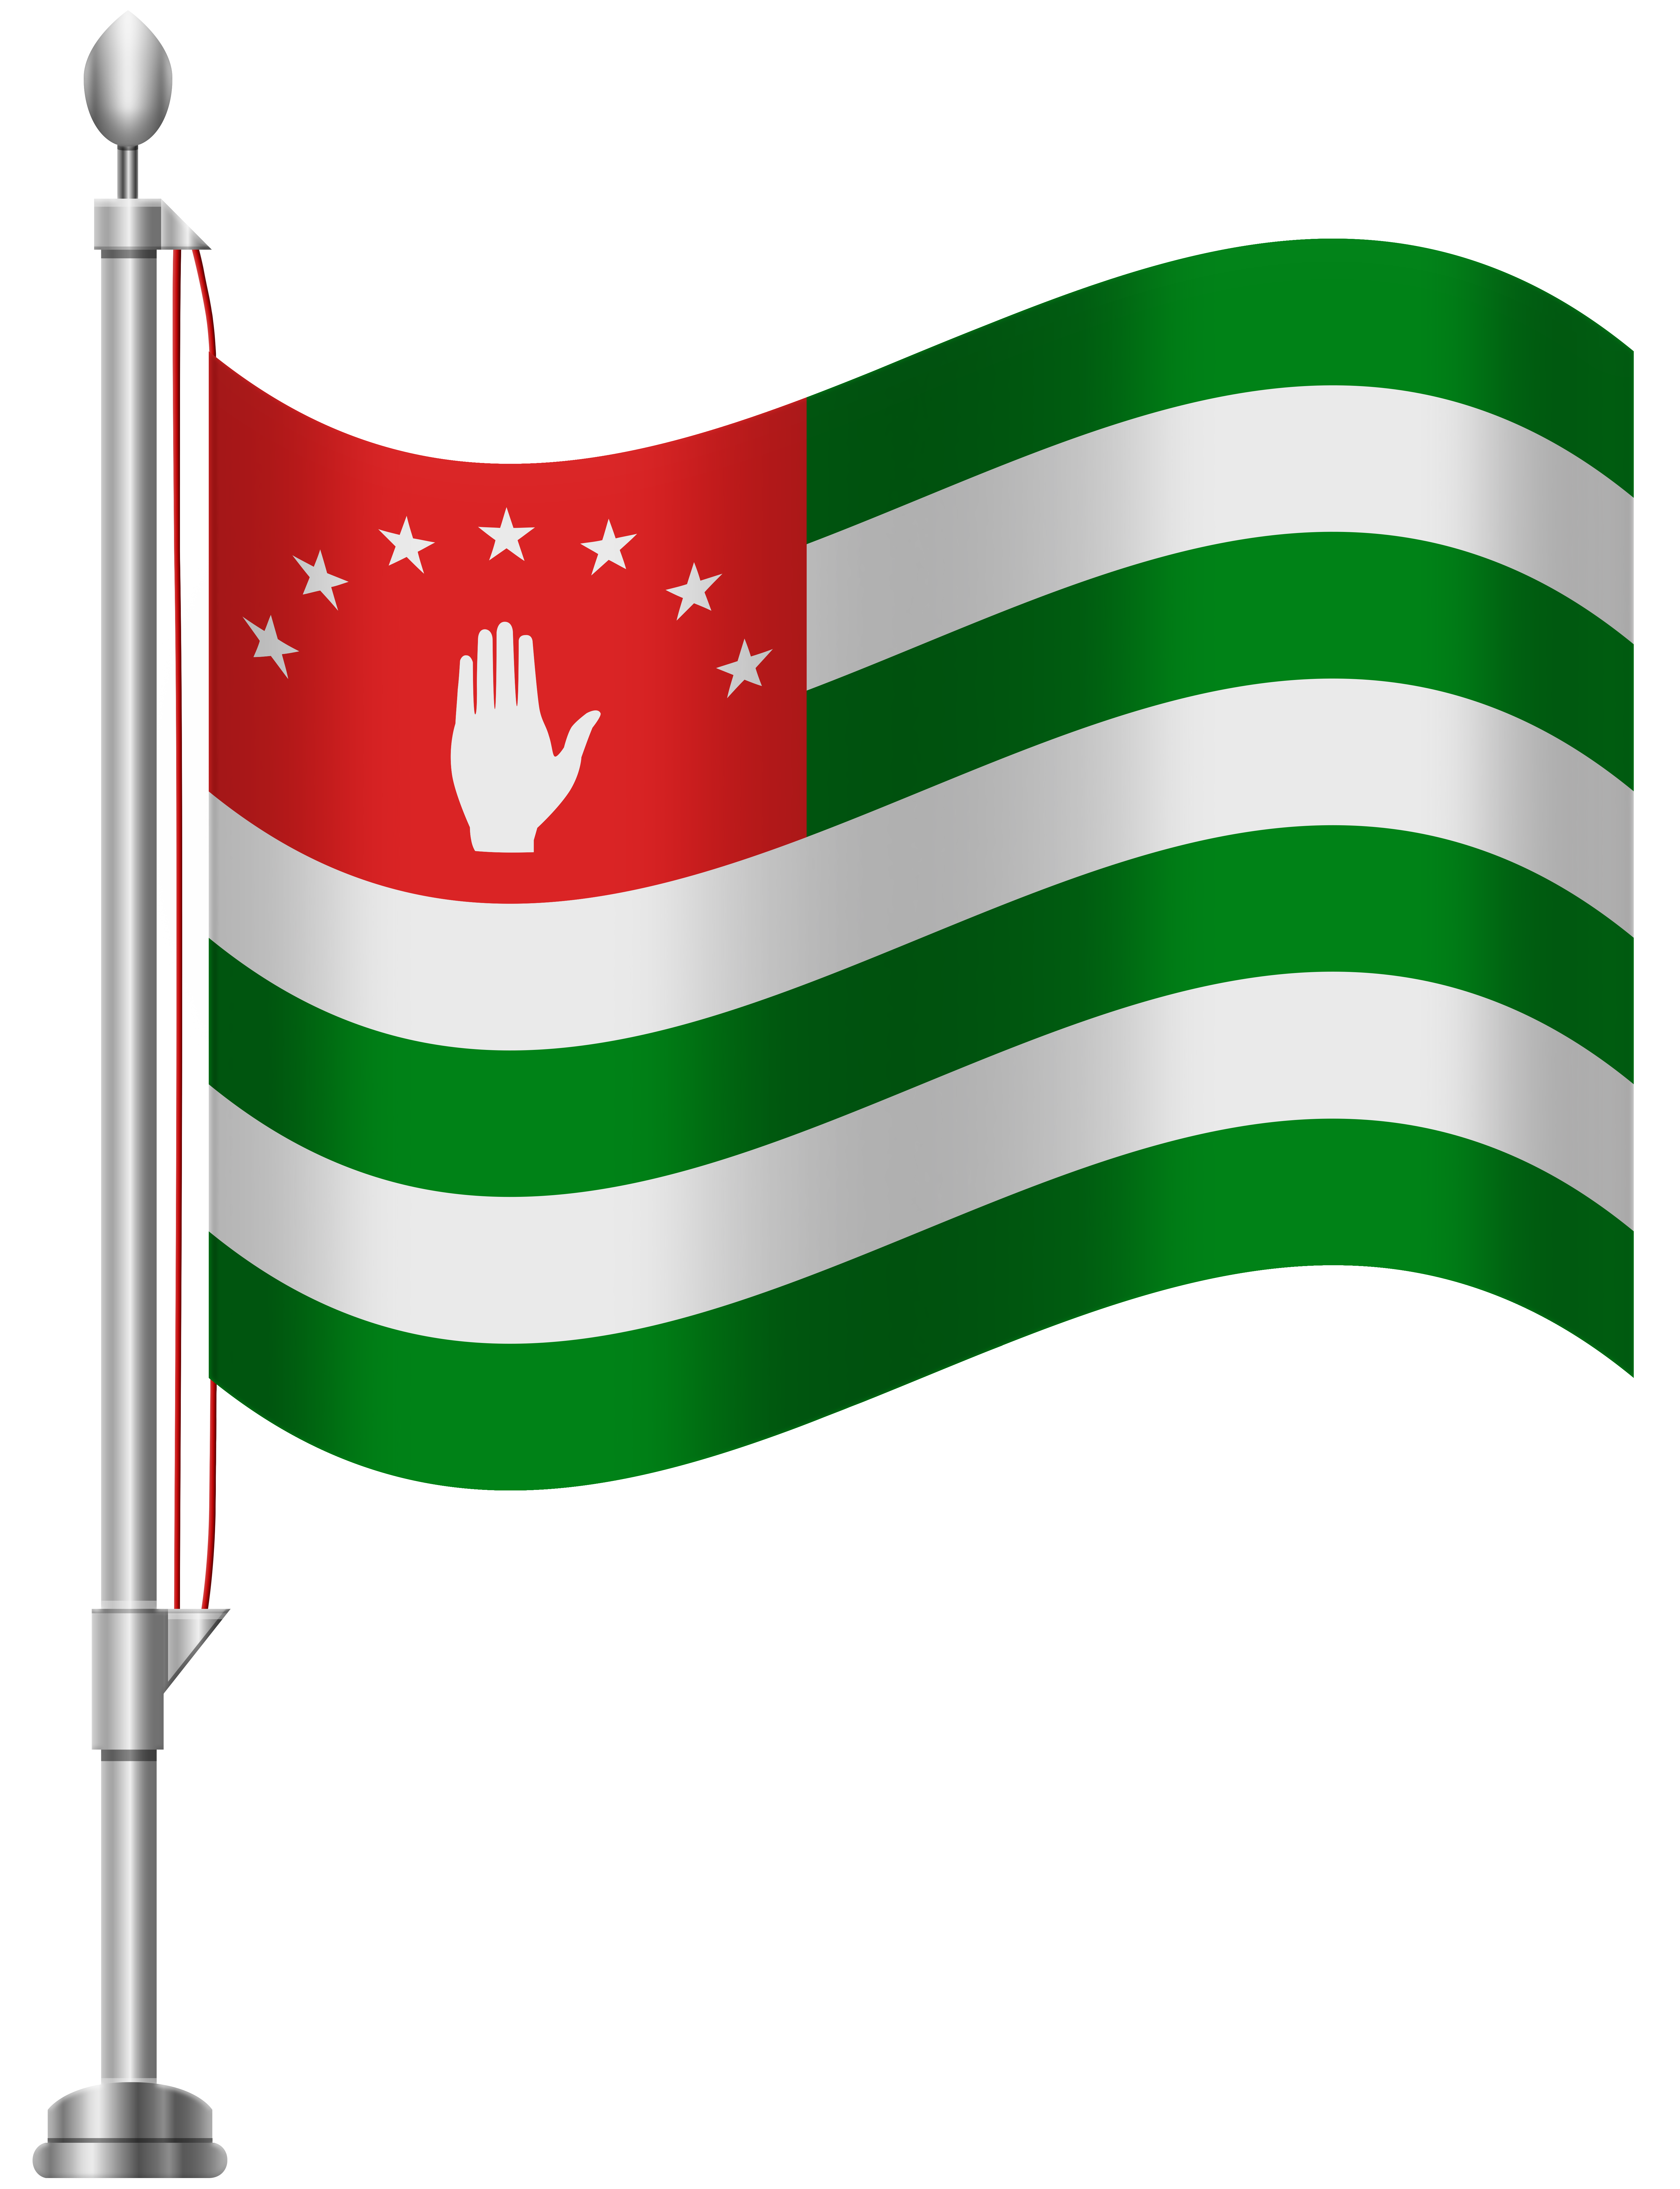 Flag with cross clipart. Day at getdrawings com